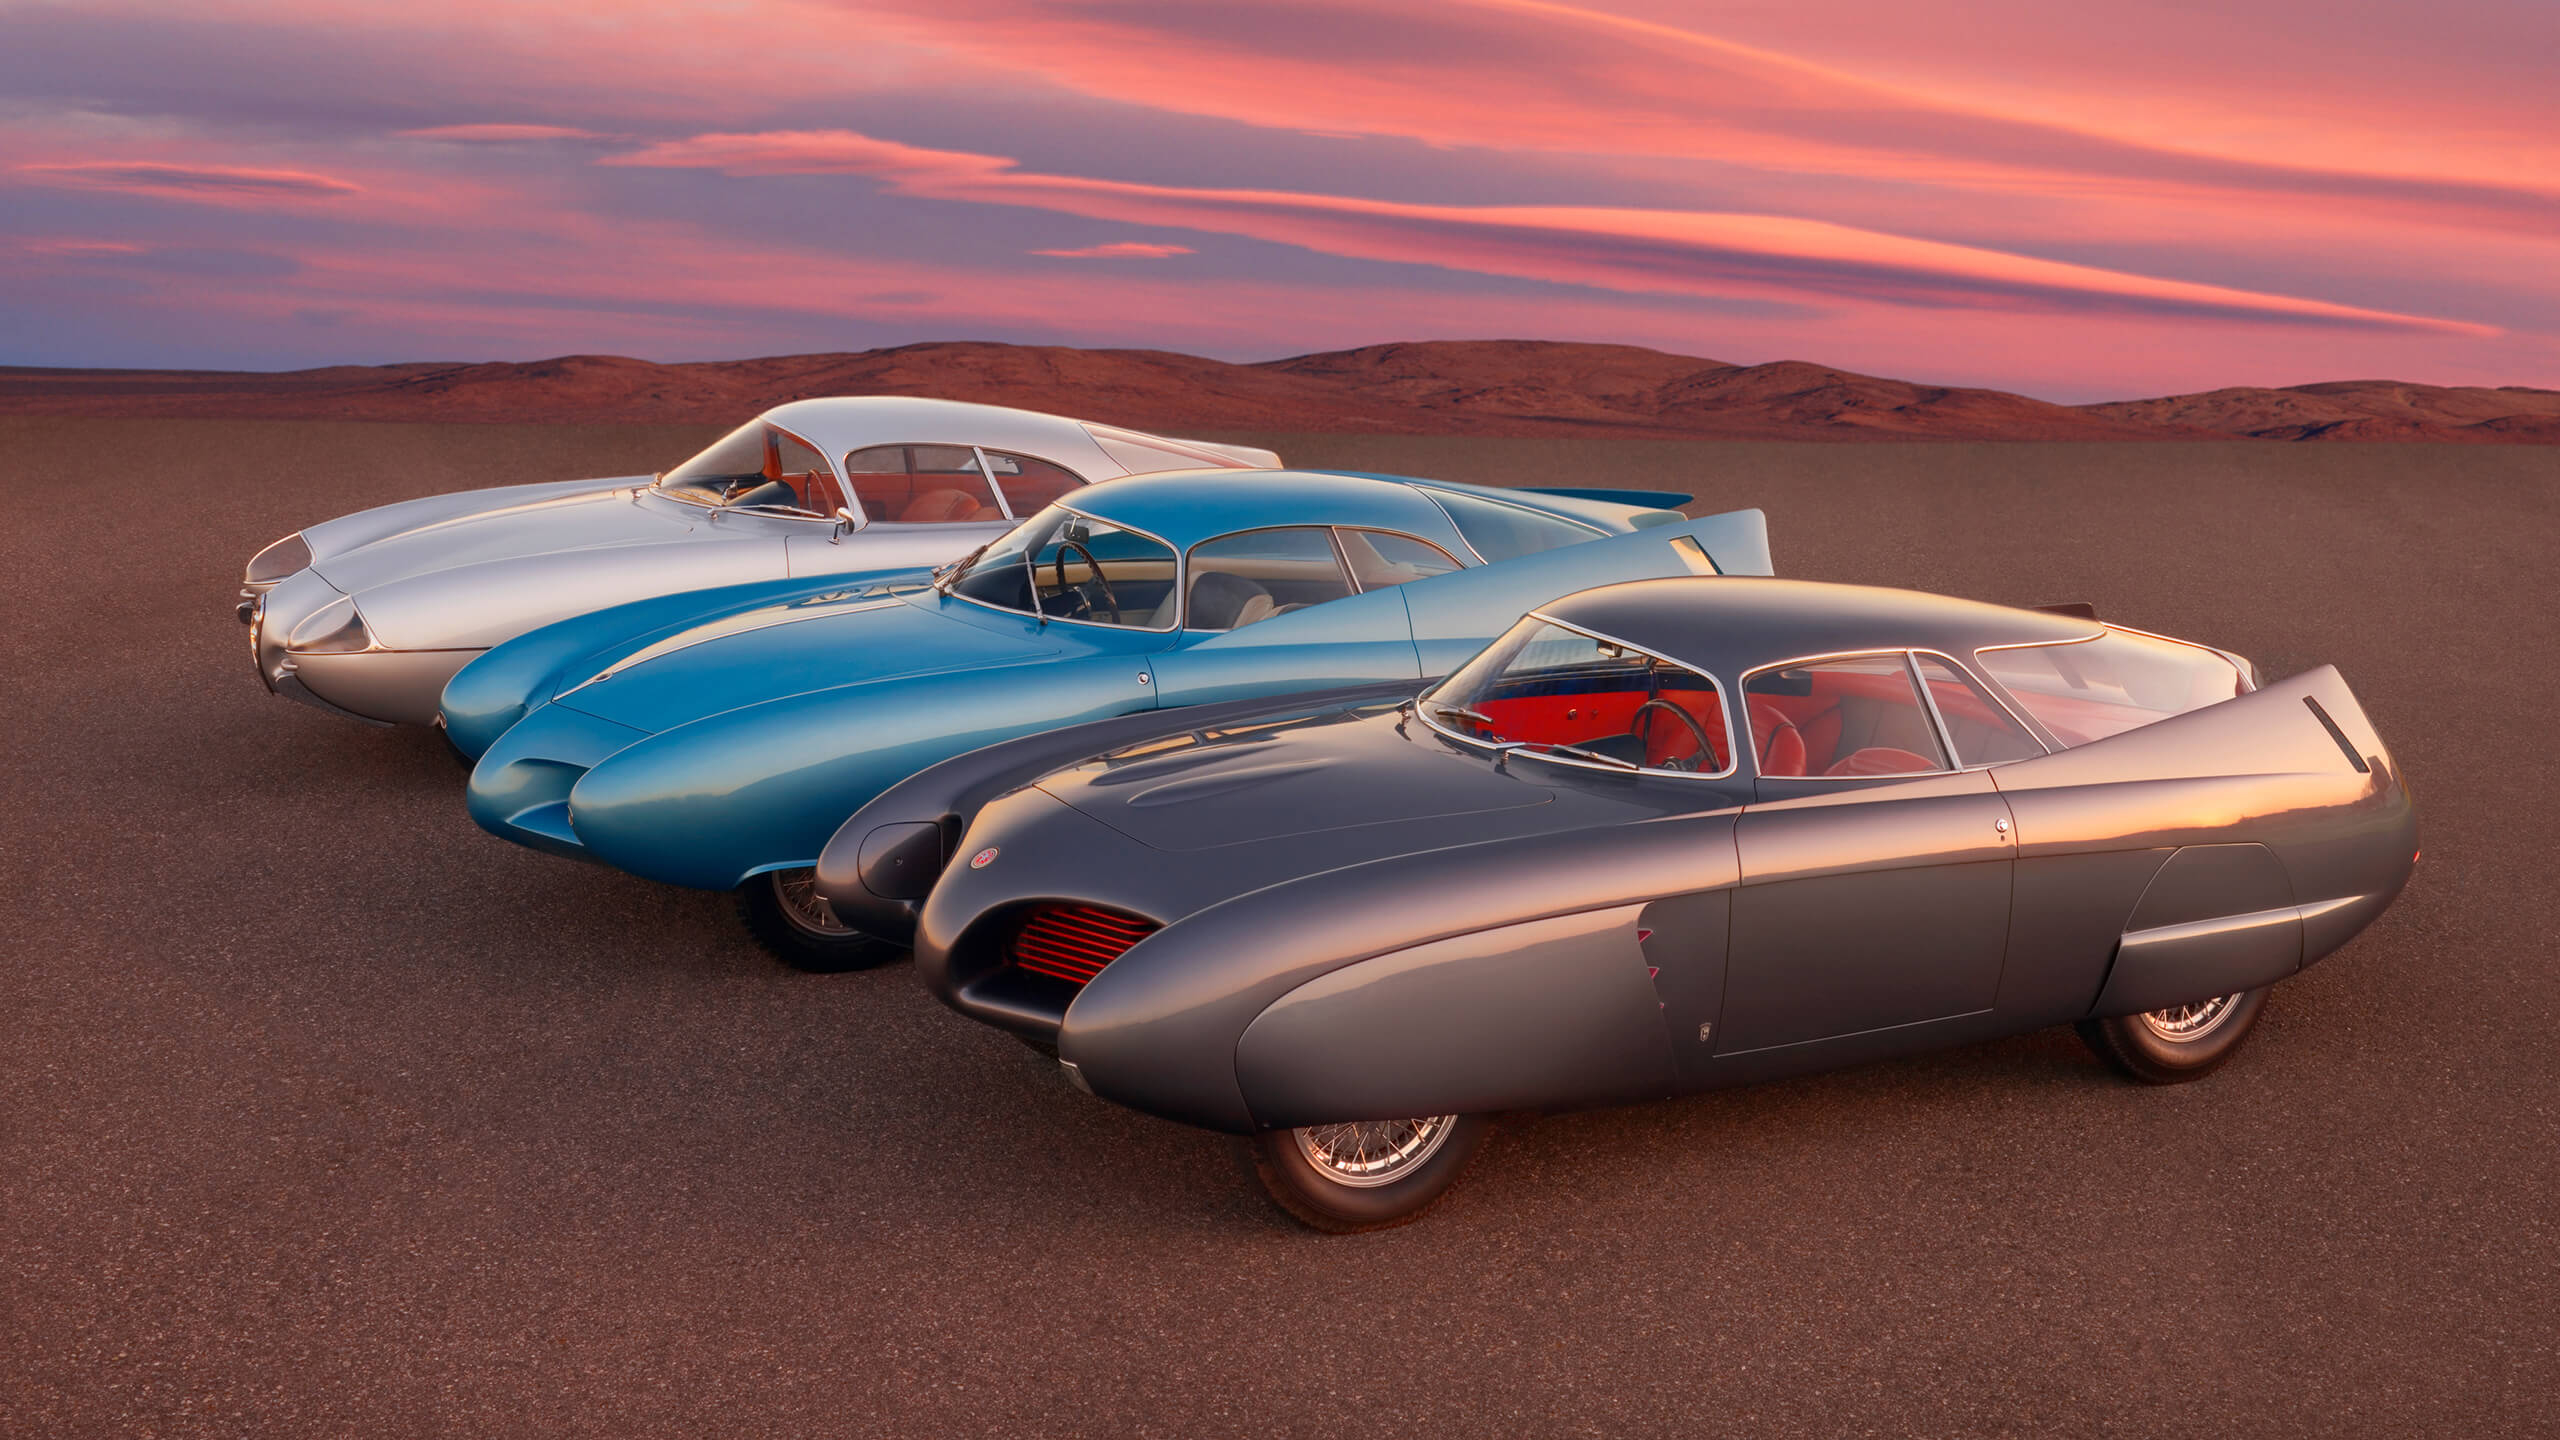 B.A.T. cars triptych sells for $14.8m